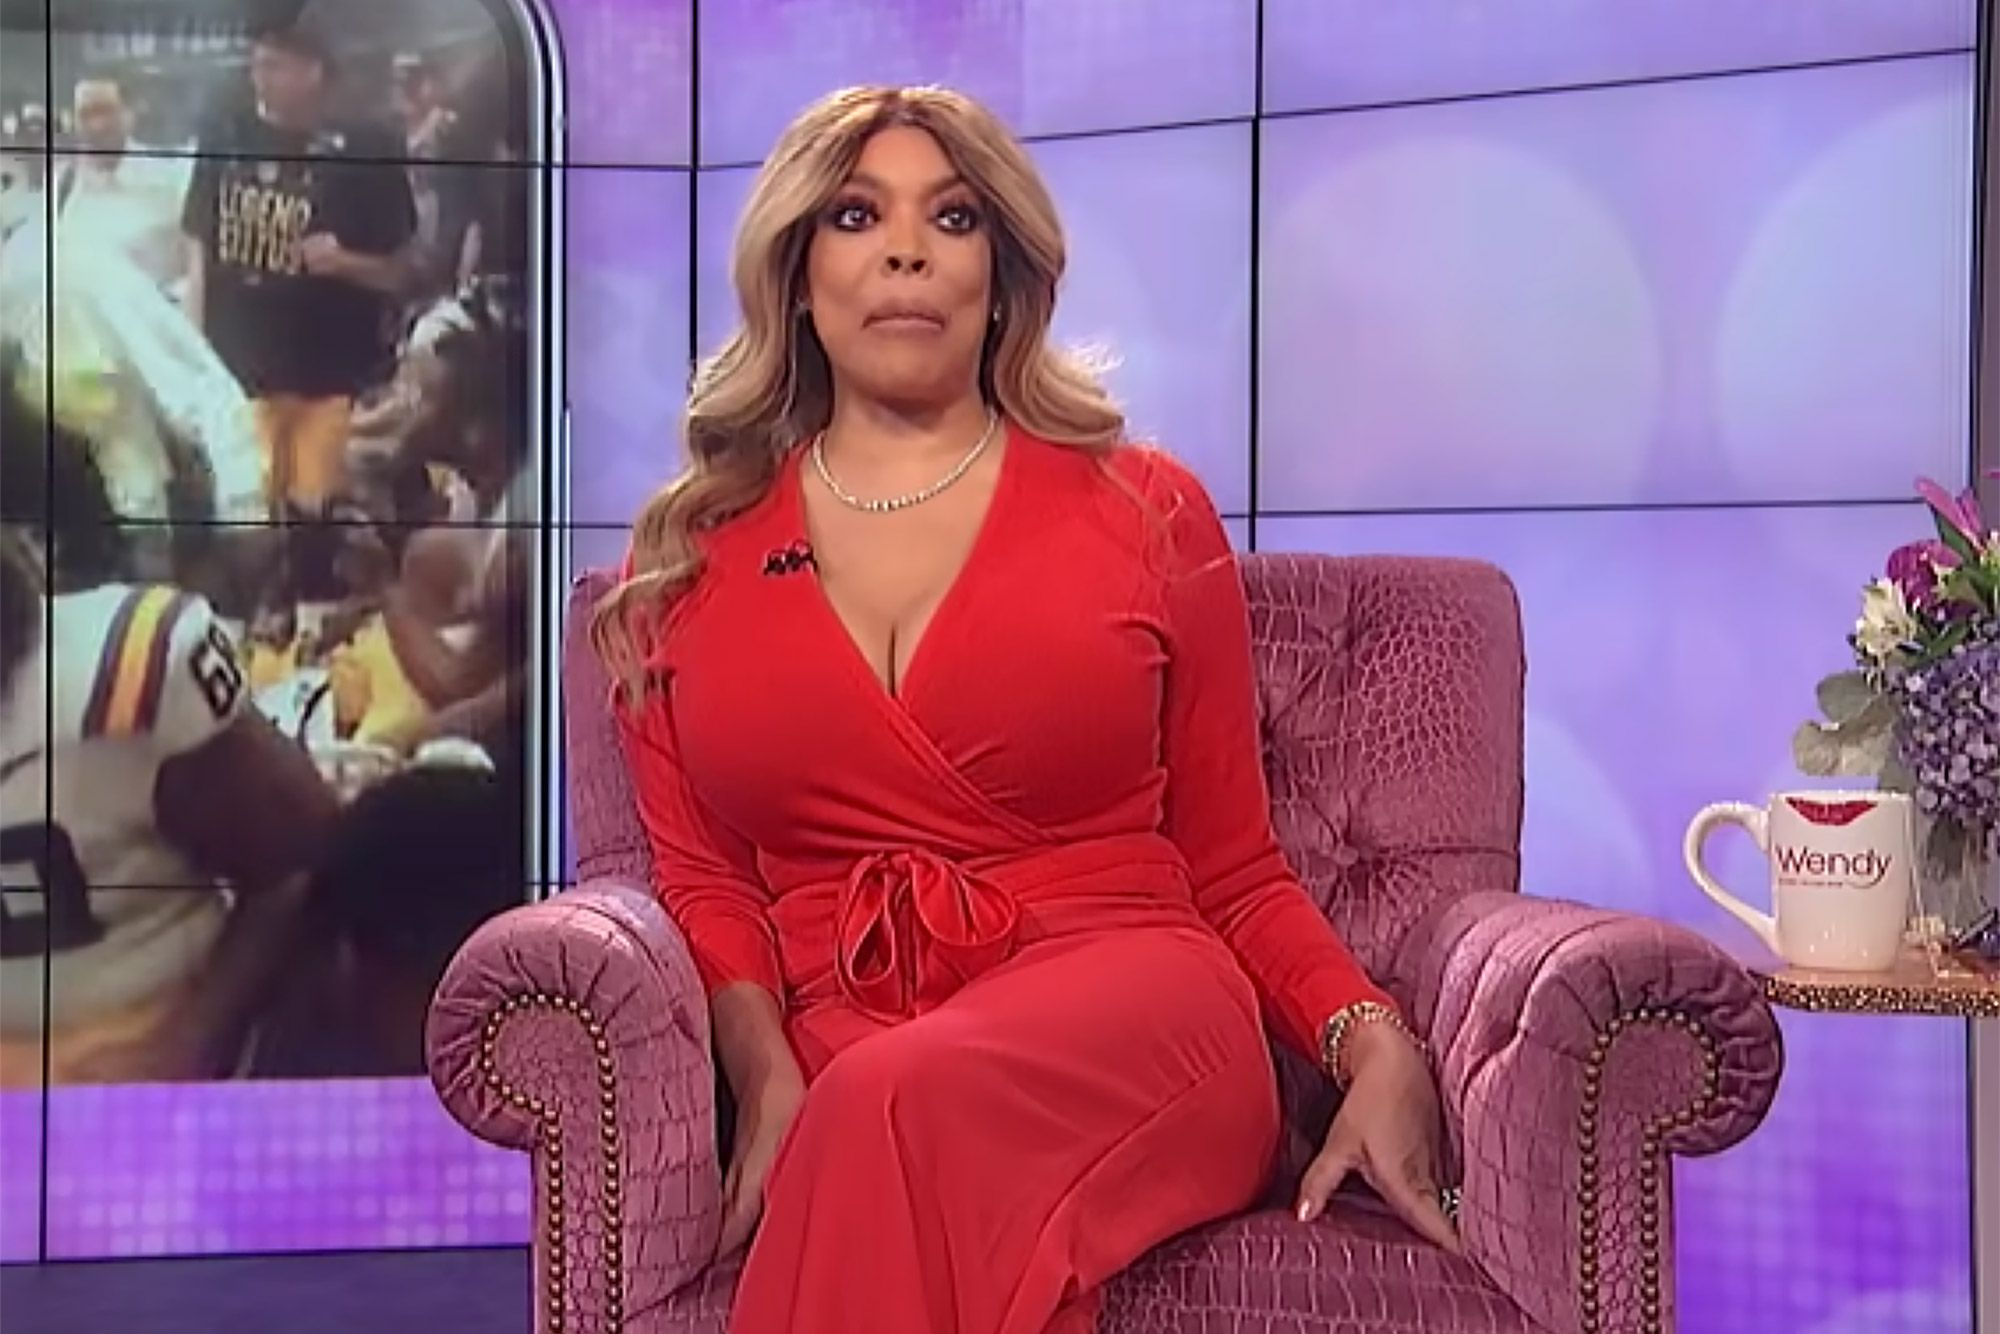 Wendy Williams hits Rock Bottom With Bad Relationship And Mental Health Making Friends Concerned!